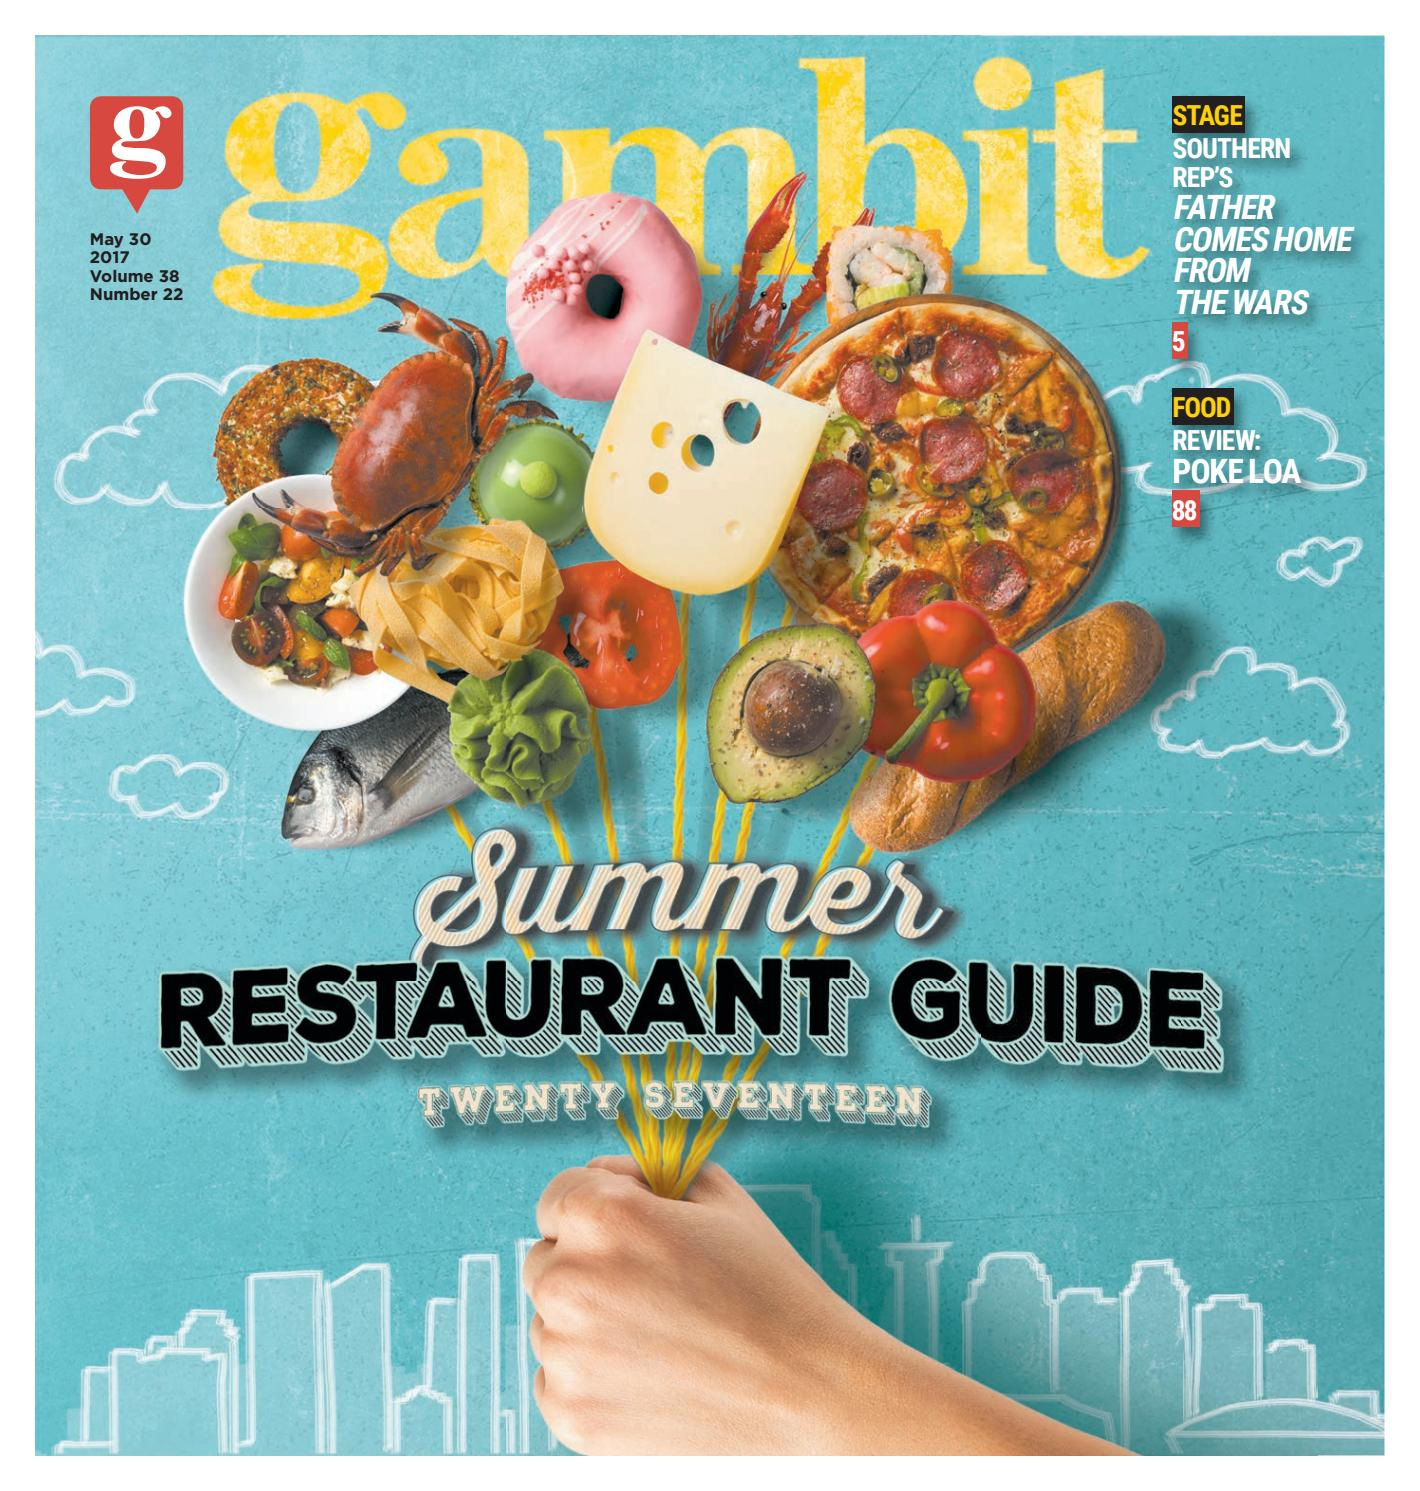 Gambit New Orleans, May 30, 2017 by Gambit New Orleans - issuu